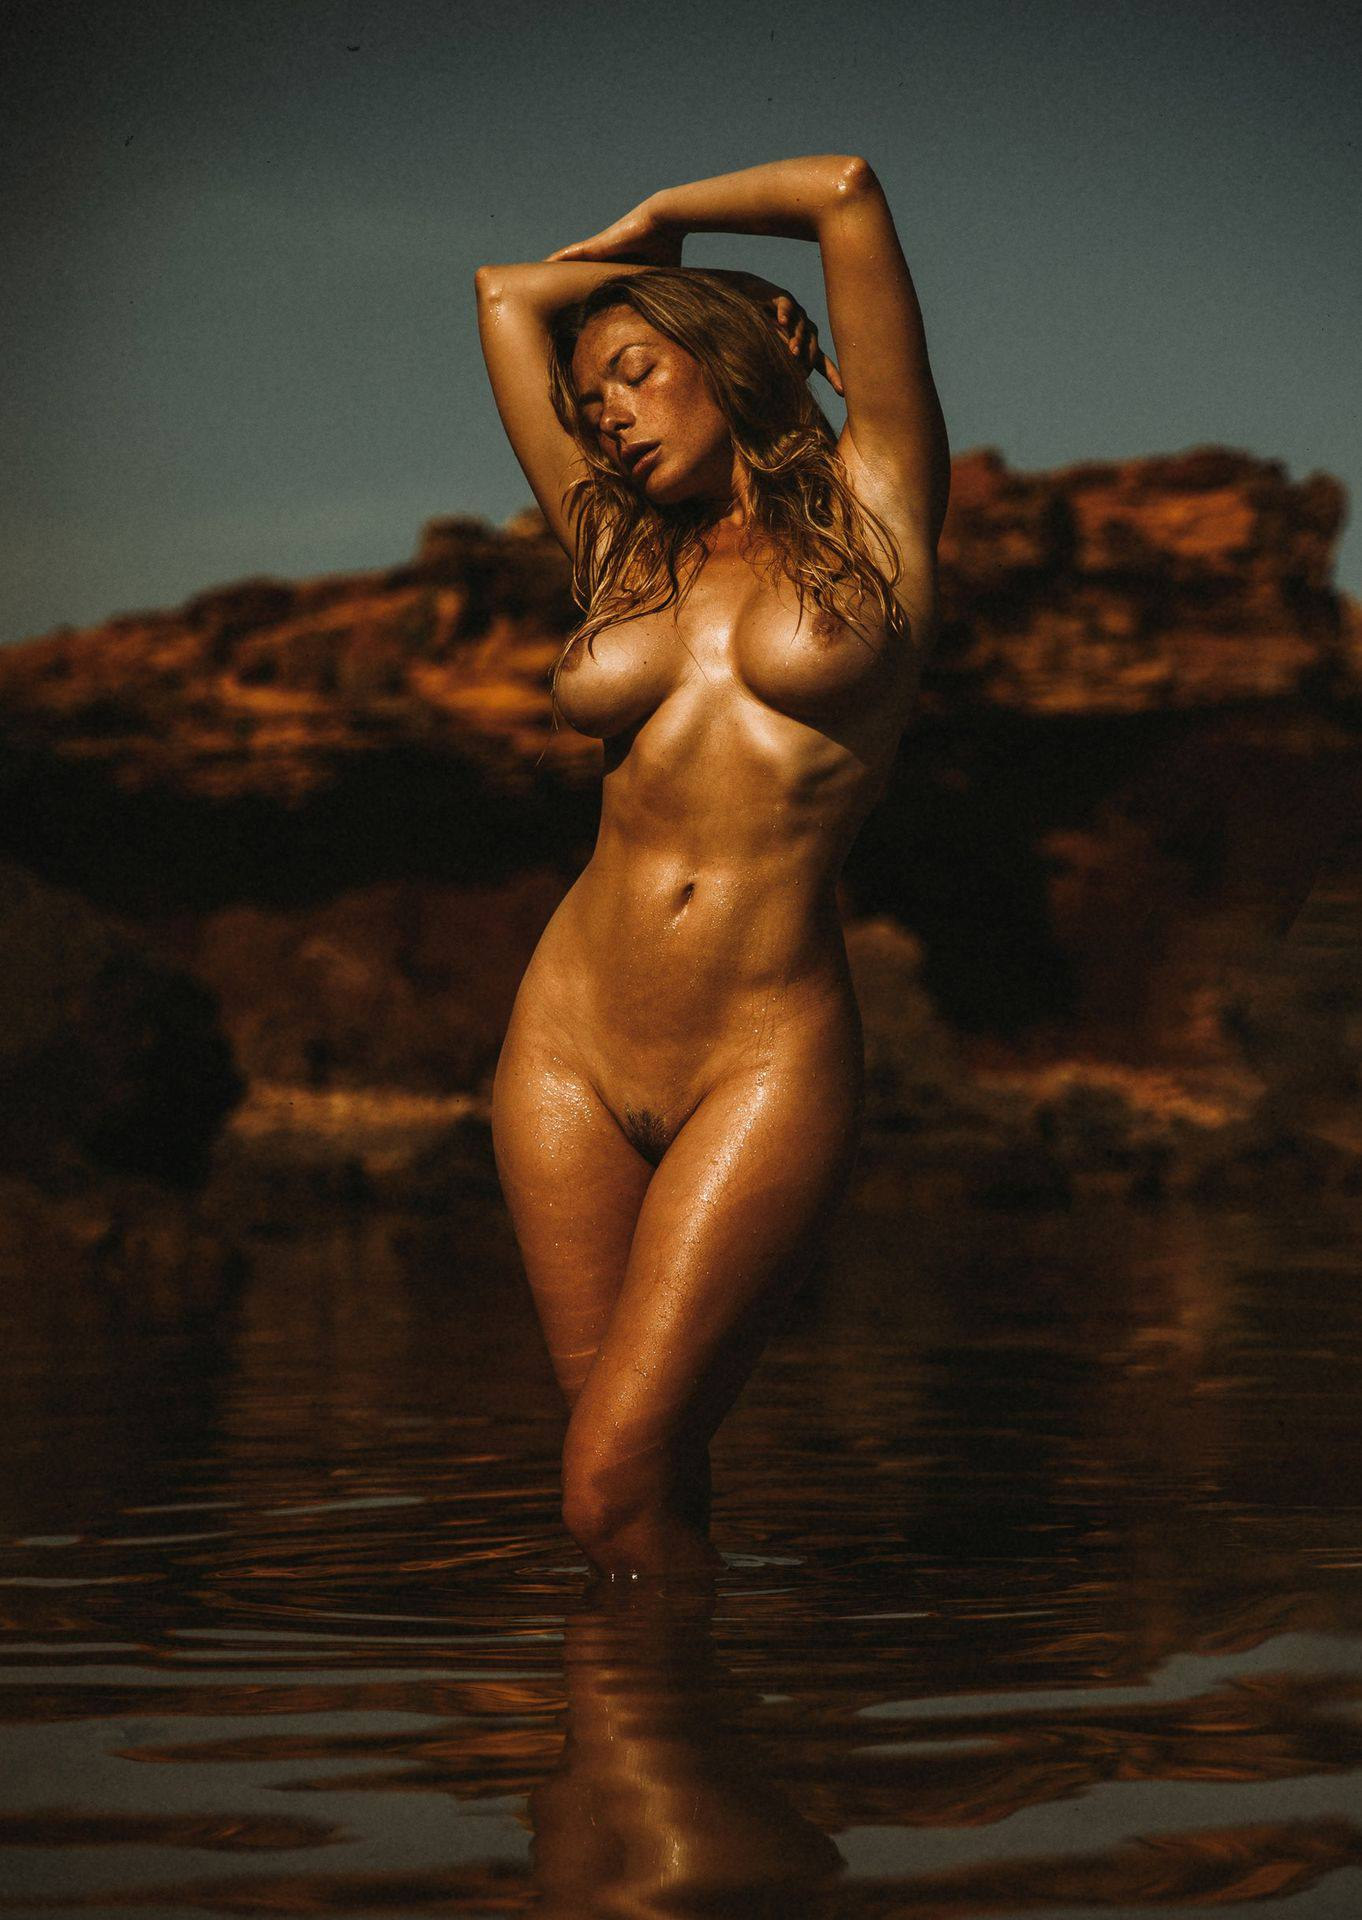 Full freontal nudity with big boobs Olga Kobzar Hot Big Boobs In Sexy Full Frontal Nude Photoshoot By Thomas Agatz Nsfw Thefappening